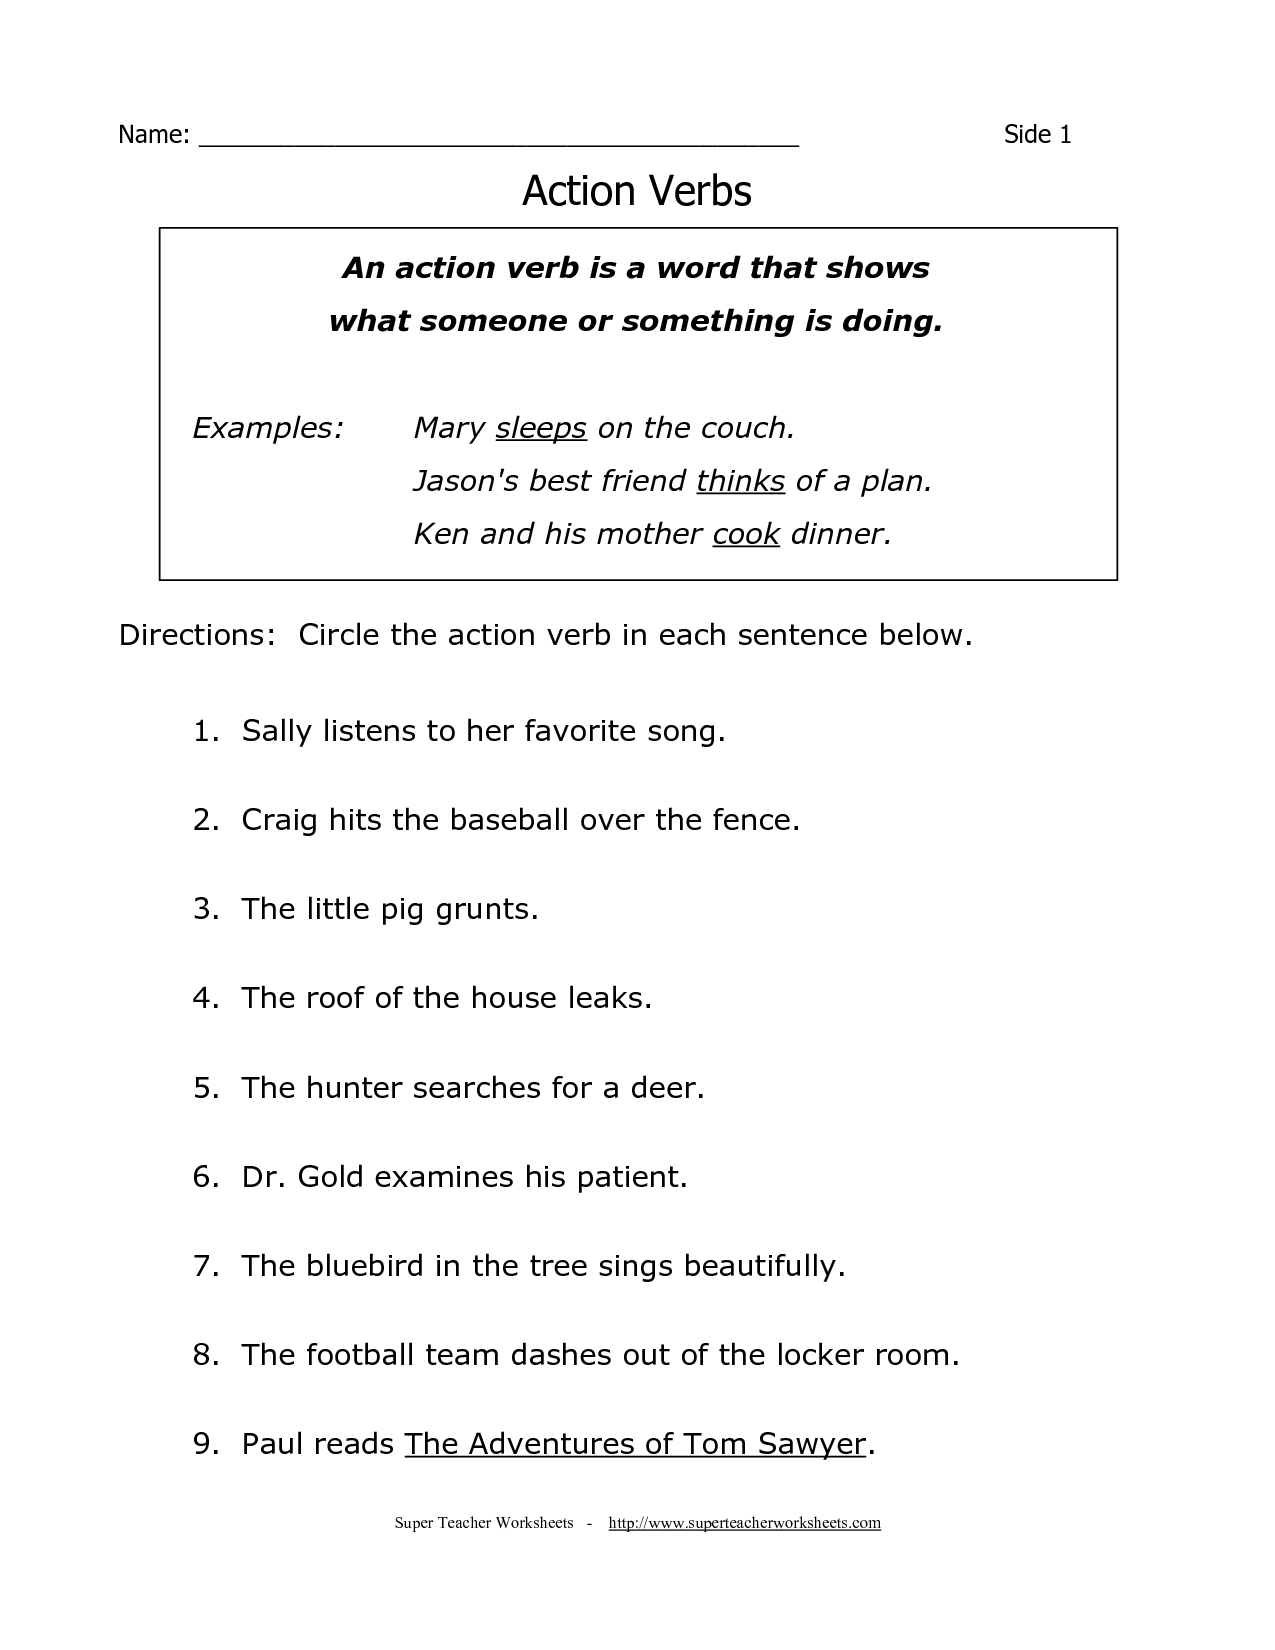 Worksheet Grade 5 English Comprehension Worksheets free printable first grade reading comprehension worksheets 5 english south africa guided worksheets